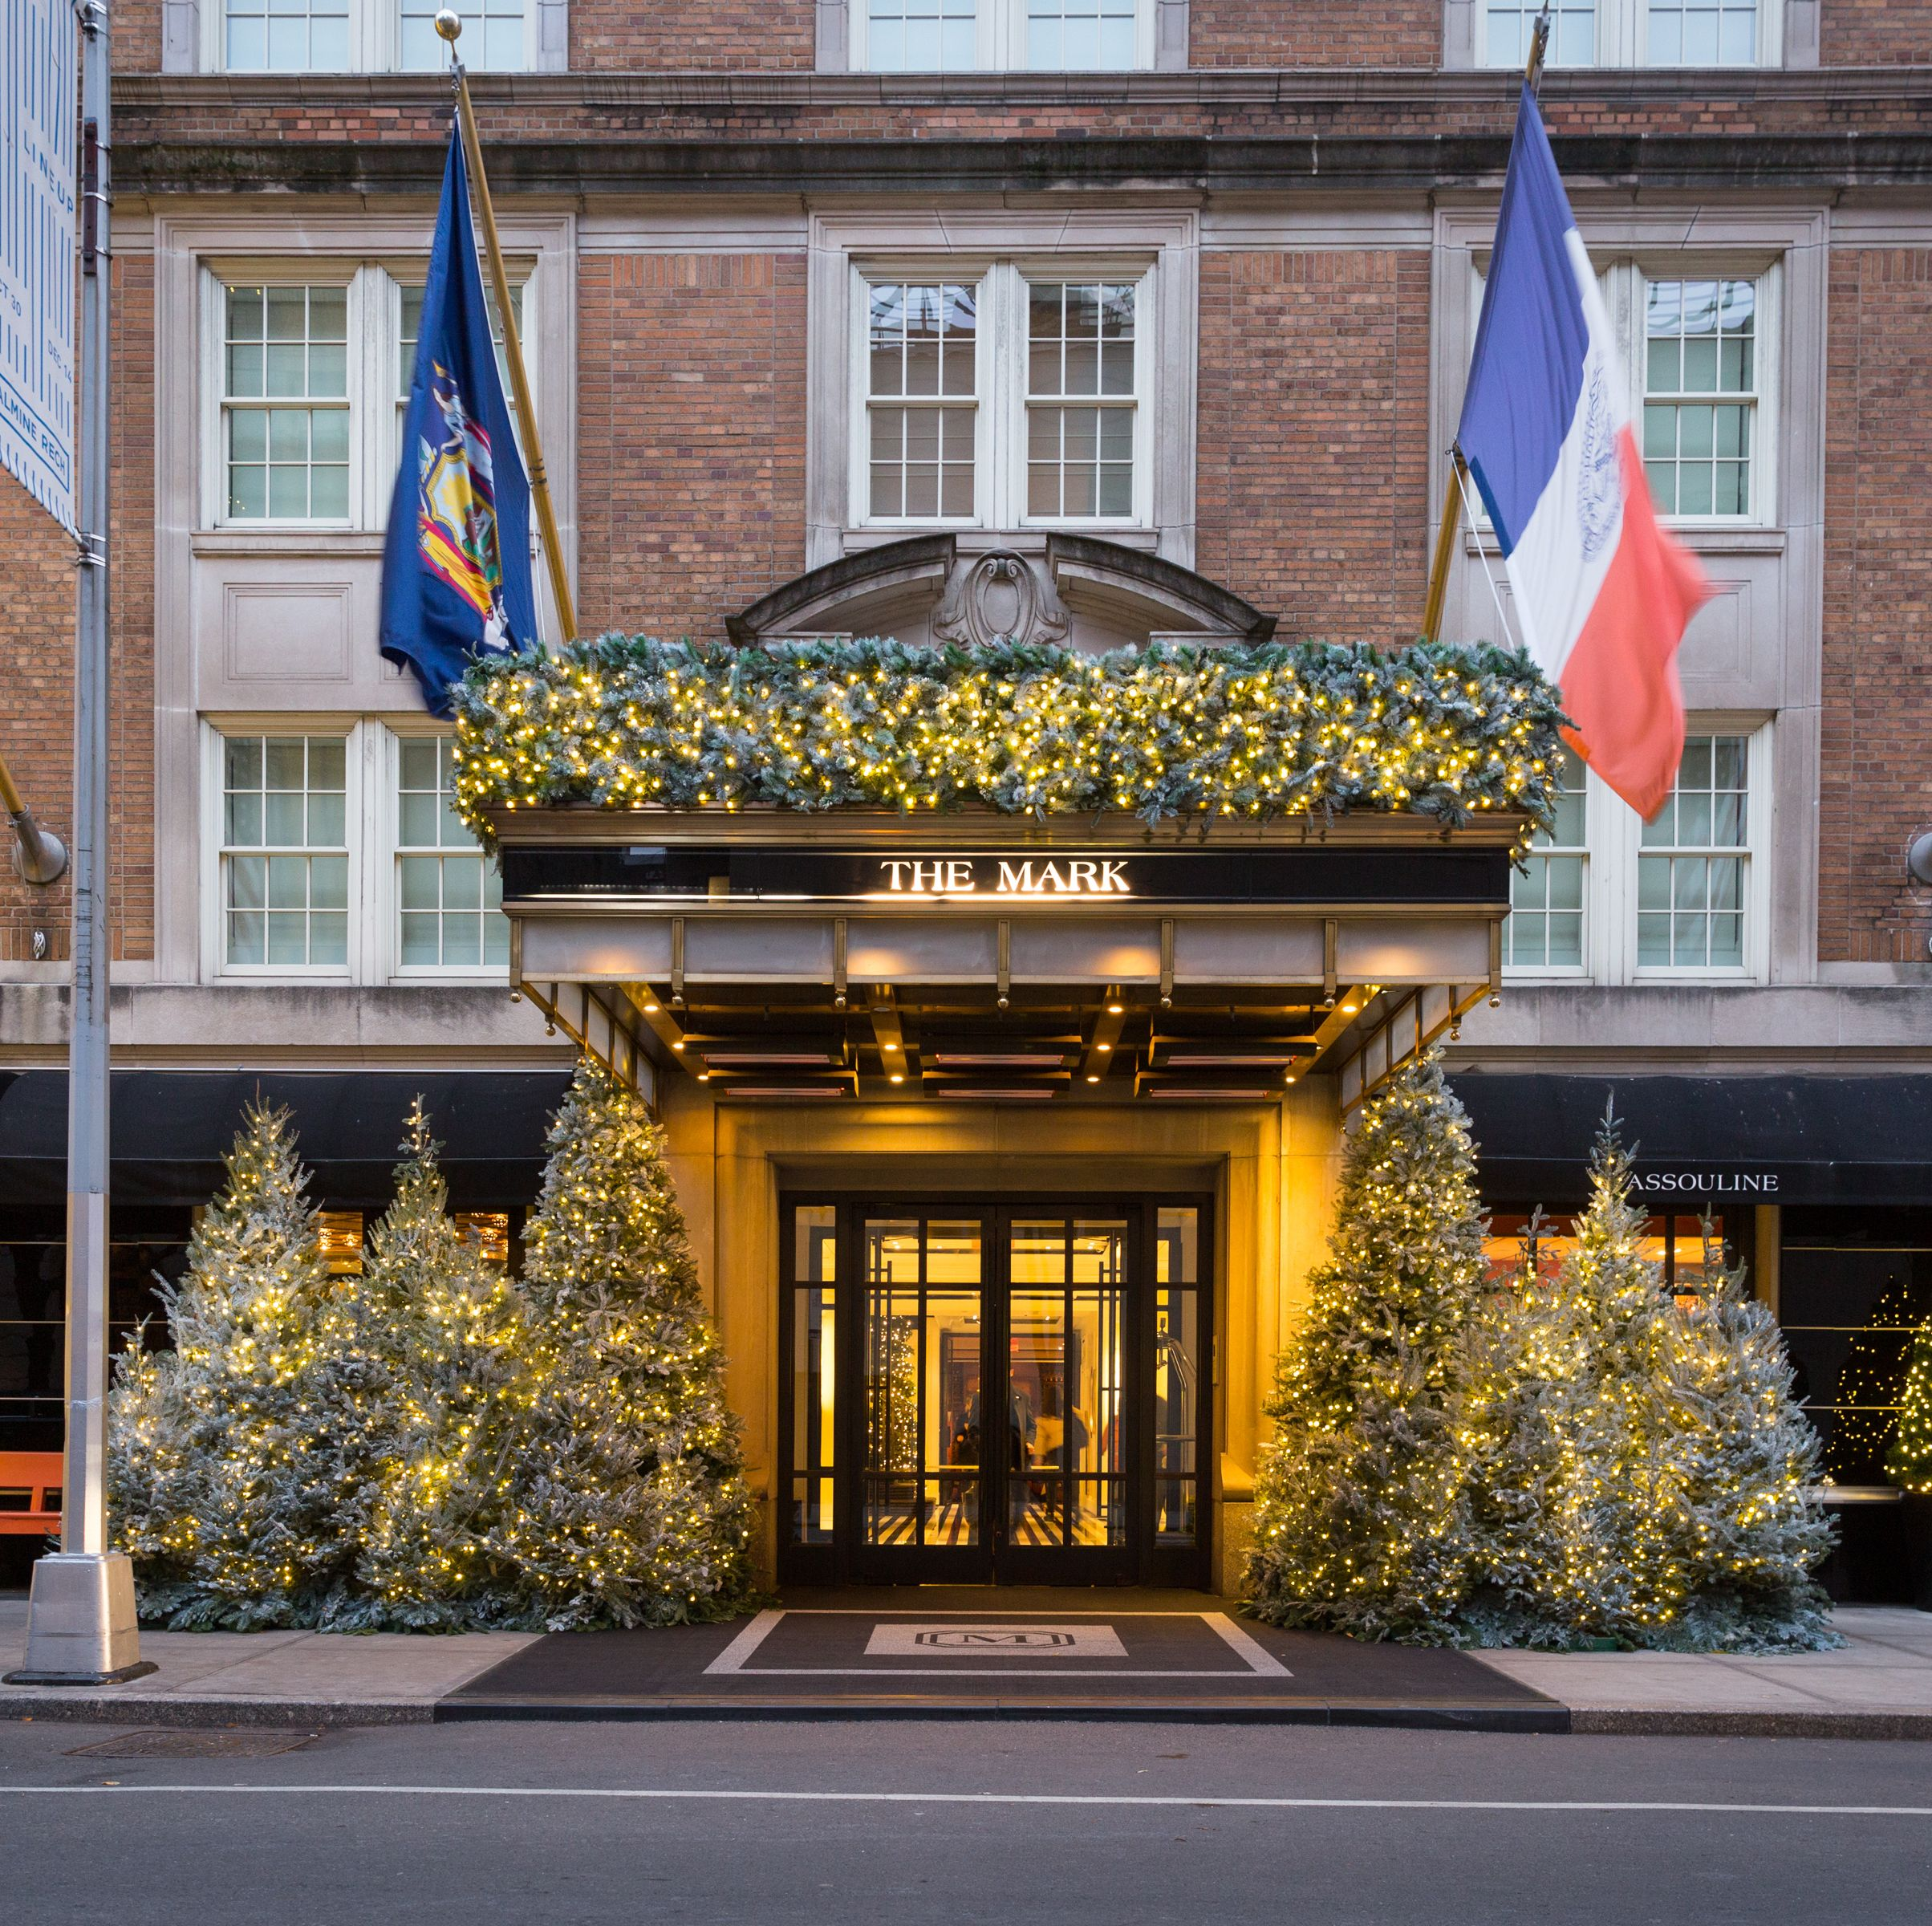 The Most Luxurious Holiday Experience in NYC Costs $175,000